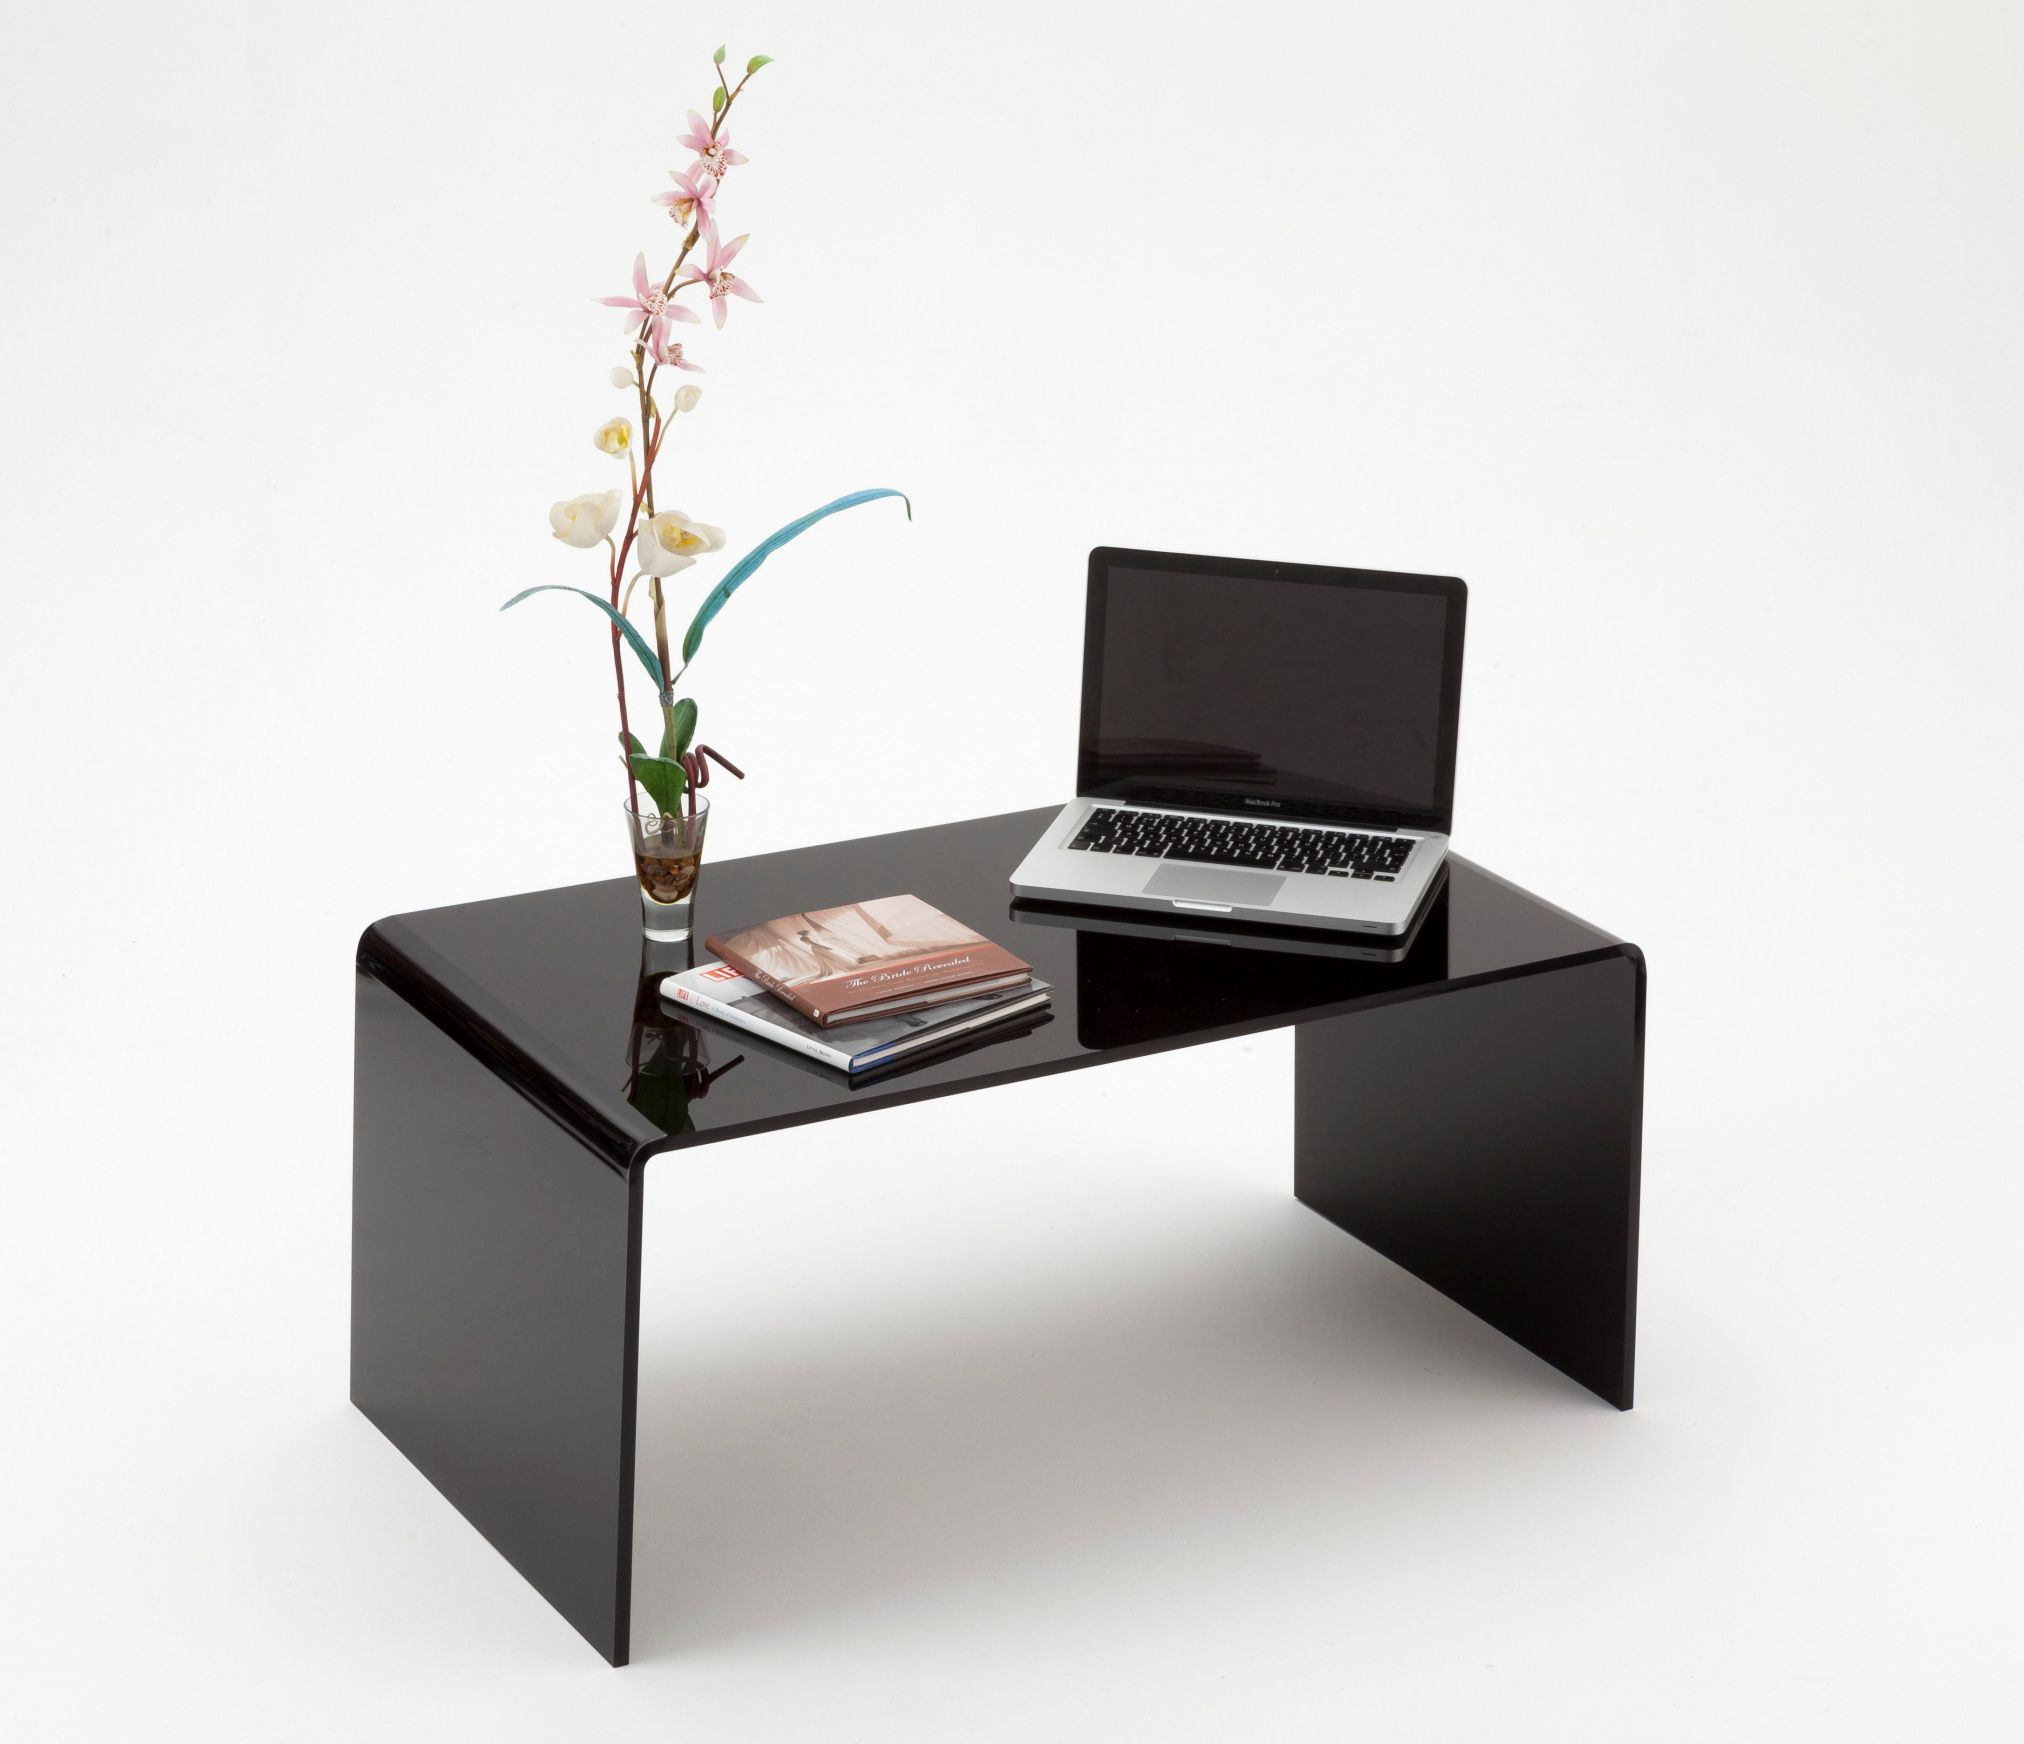 20 Black Acrylic Coffee Table   Contemporary Home Office Furniture Check  More At Http:/